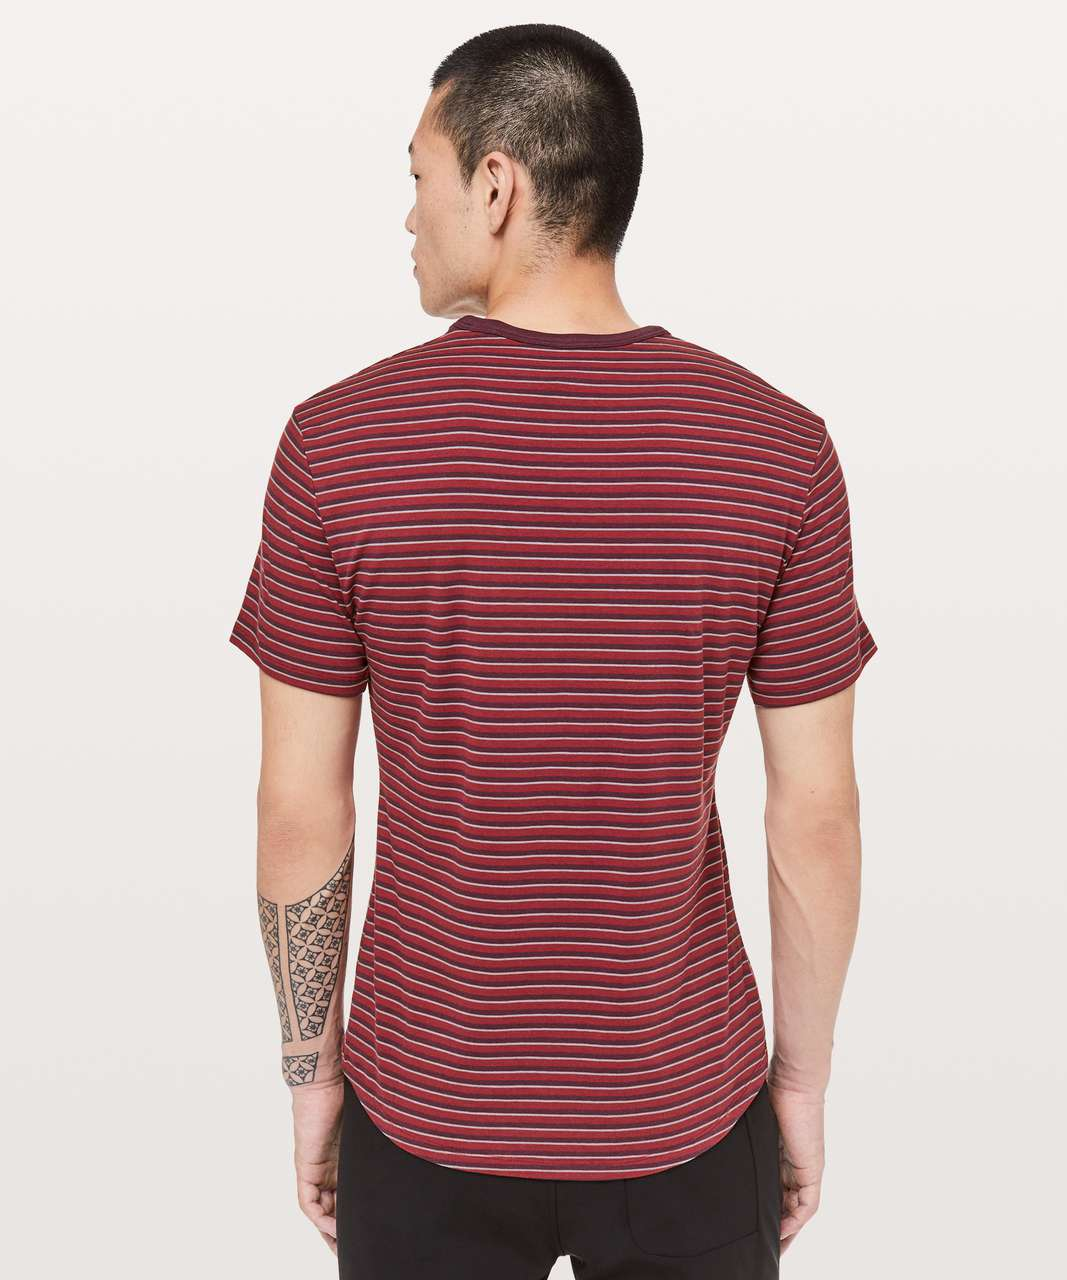 Lululemon 5 Year Basic Tee *Updated Fit - Dark Adobe / Light Cast / Dark Sport Red